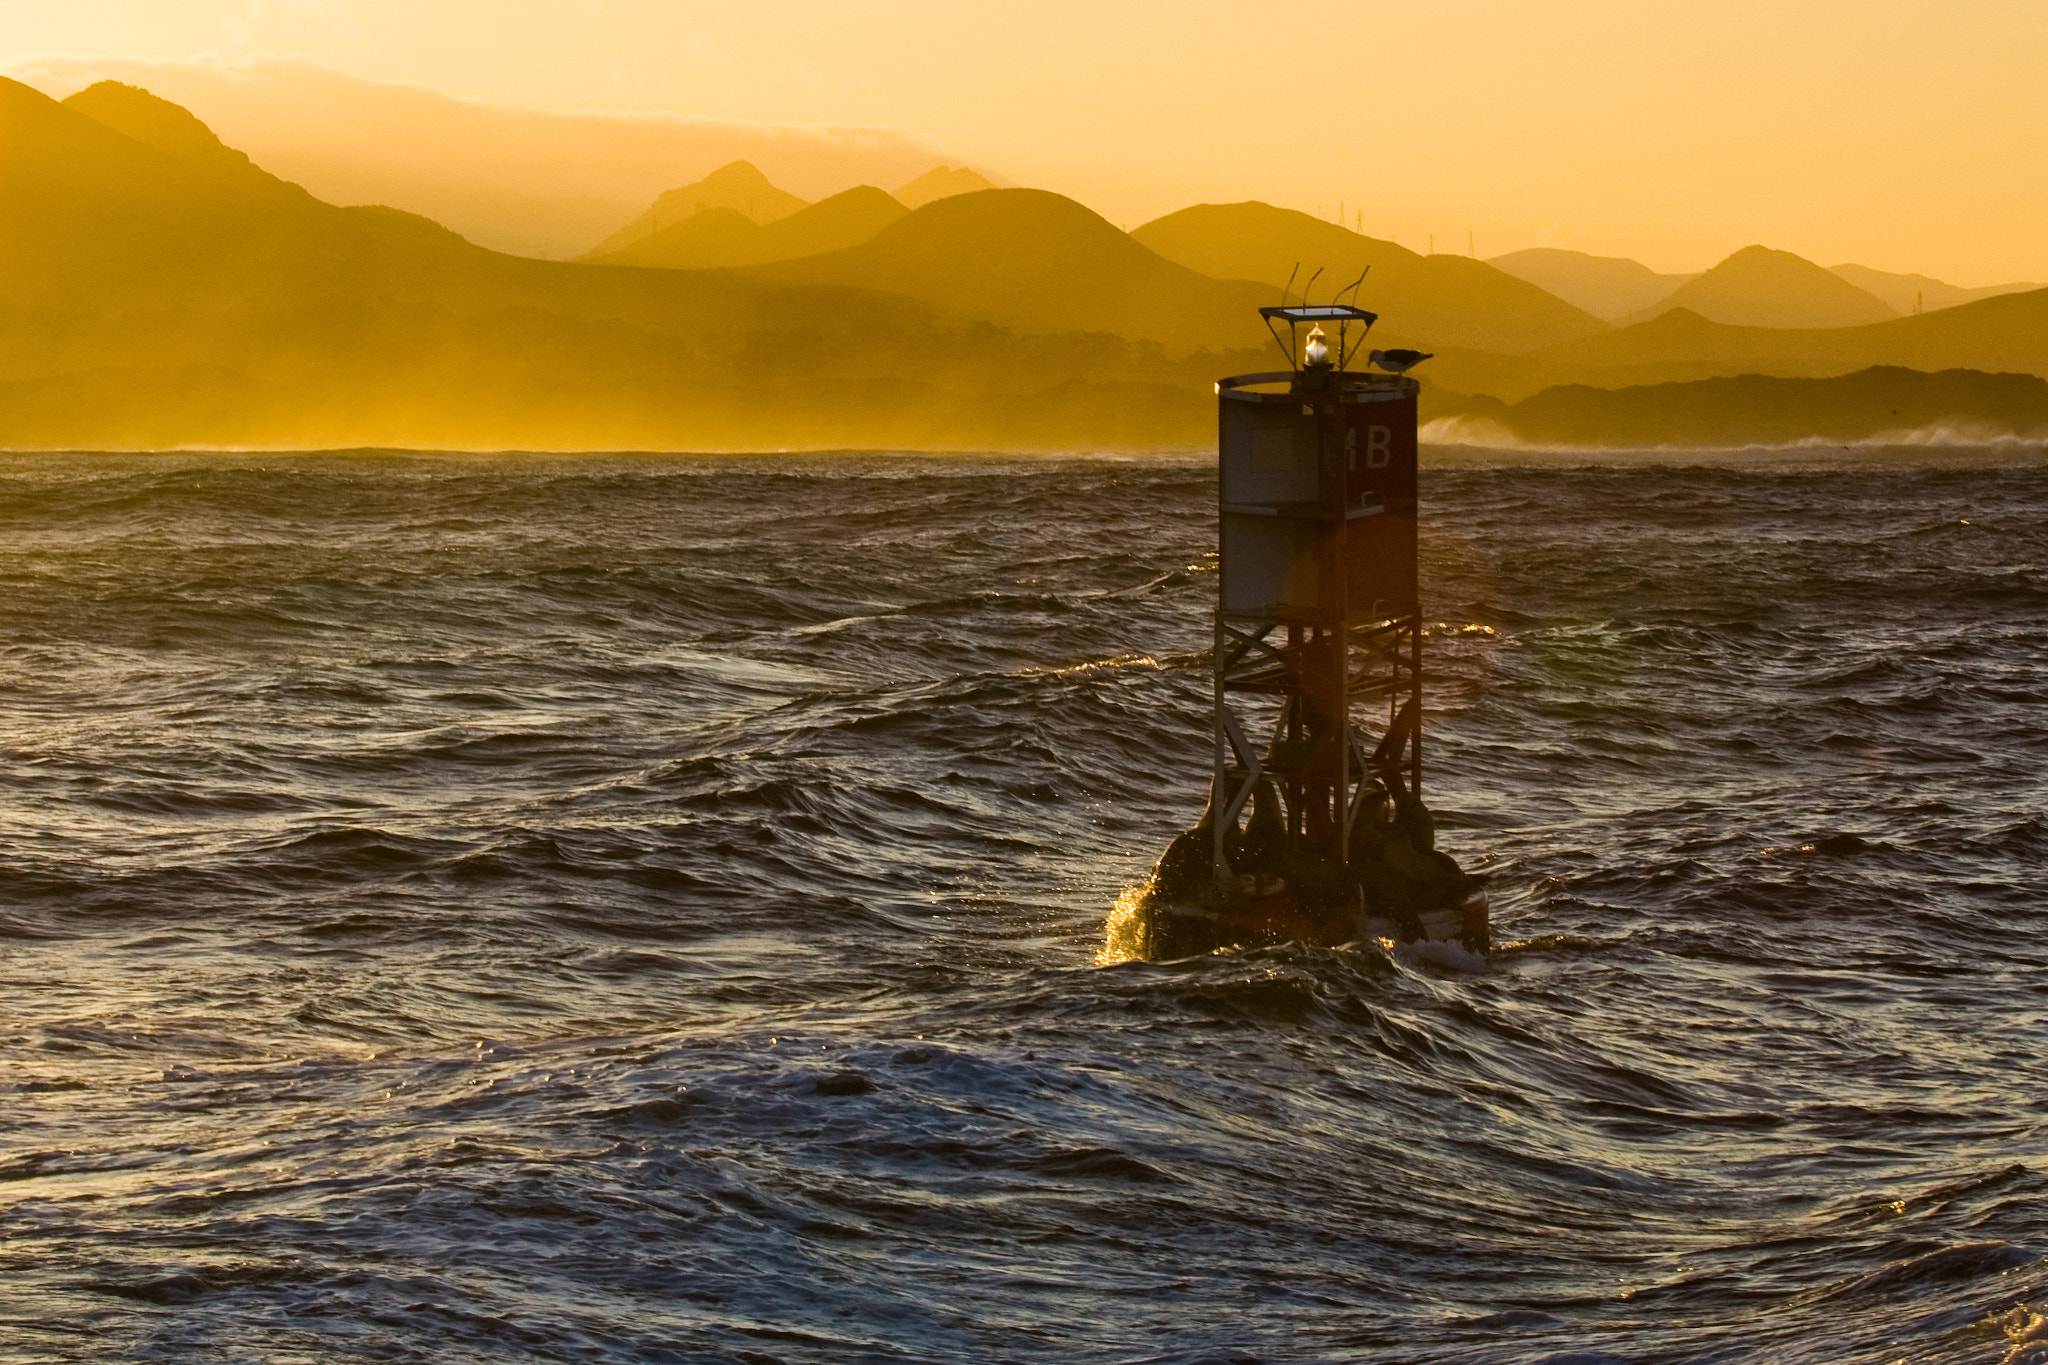 Photograph The Morro Bay MB Buoy and Seven Sisters Morros by Mike Baird on 500px